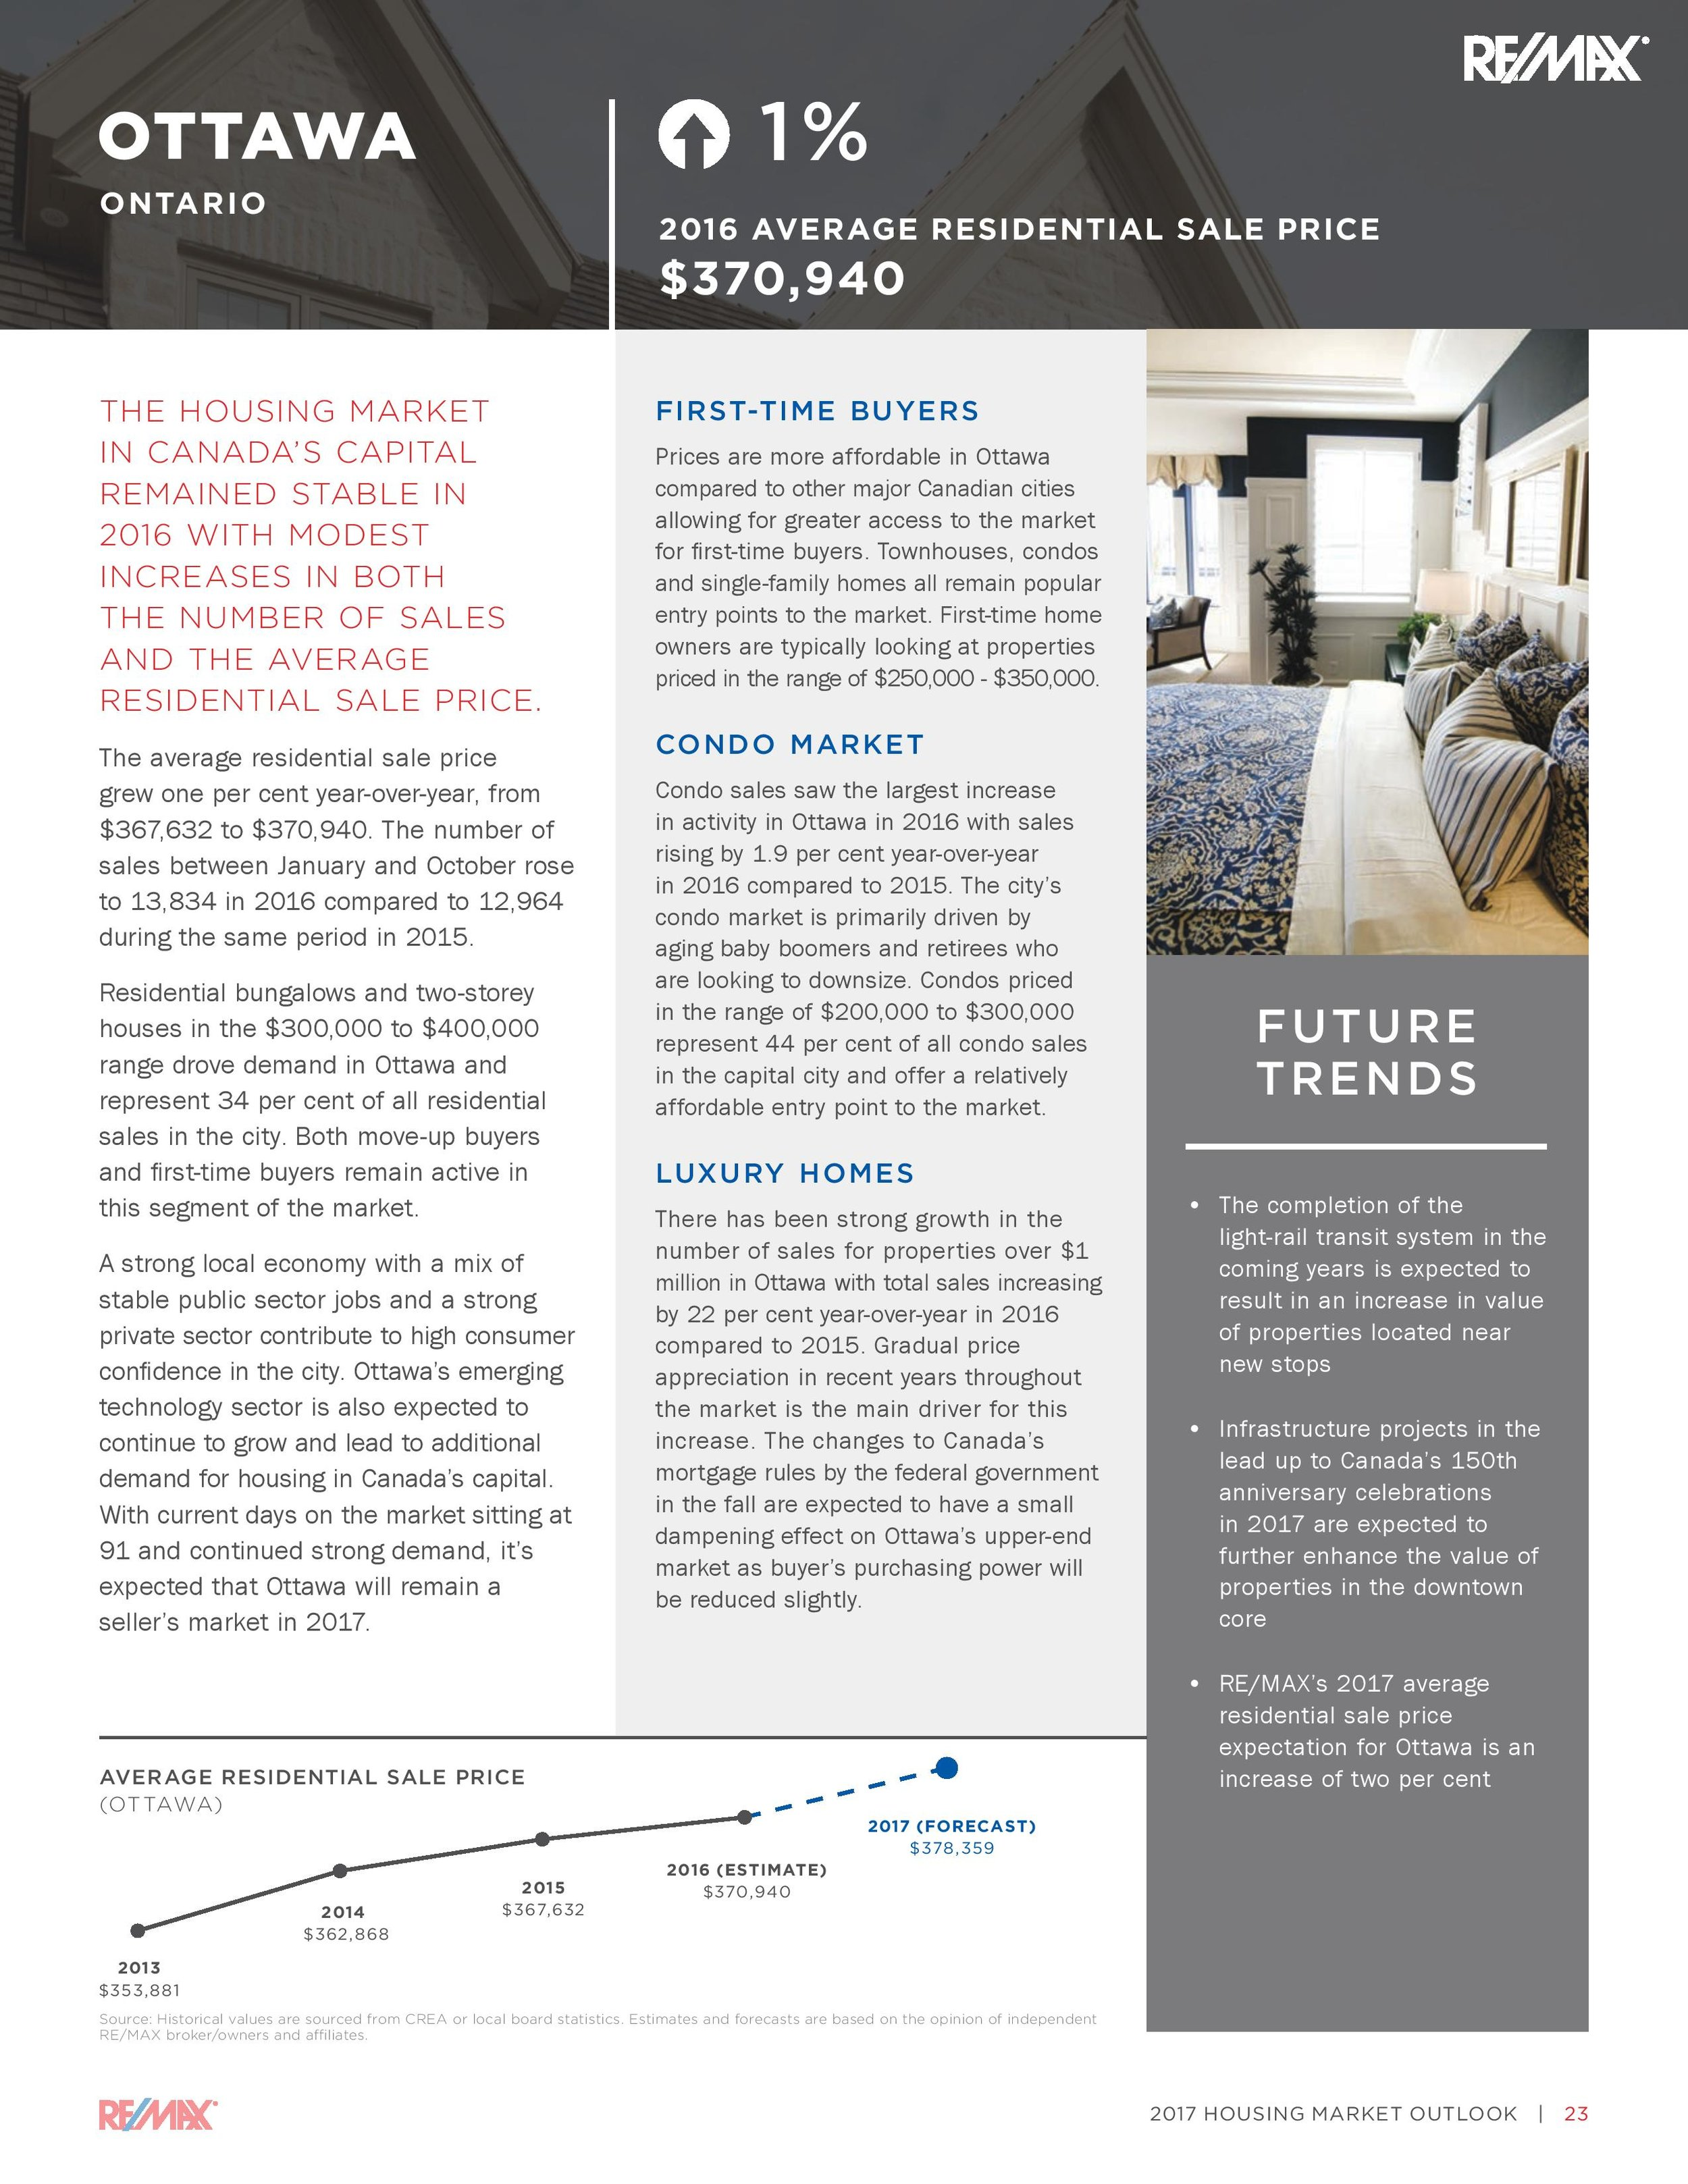 It's all good news for Ottawa! Consumer confidence remains strong in our market. With a stable job market, high tech growth and the LRT investment, we have much to look forward to. Check the detail above and call with any questions on your particular home and neighborhood.